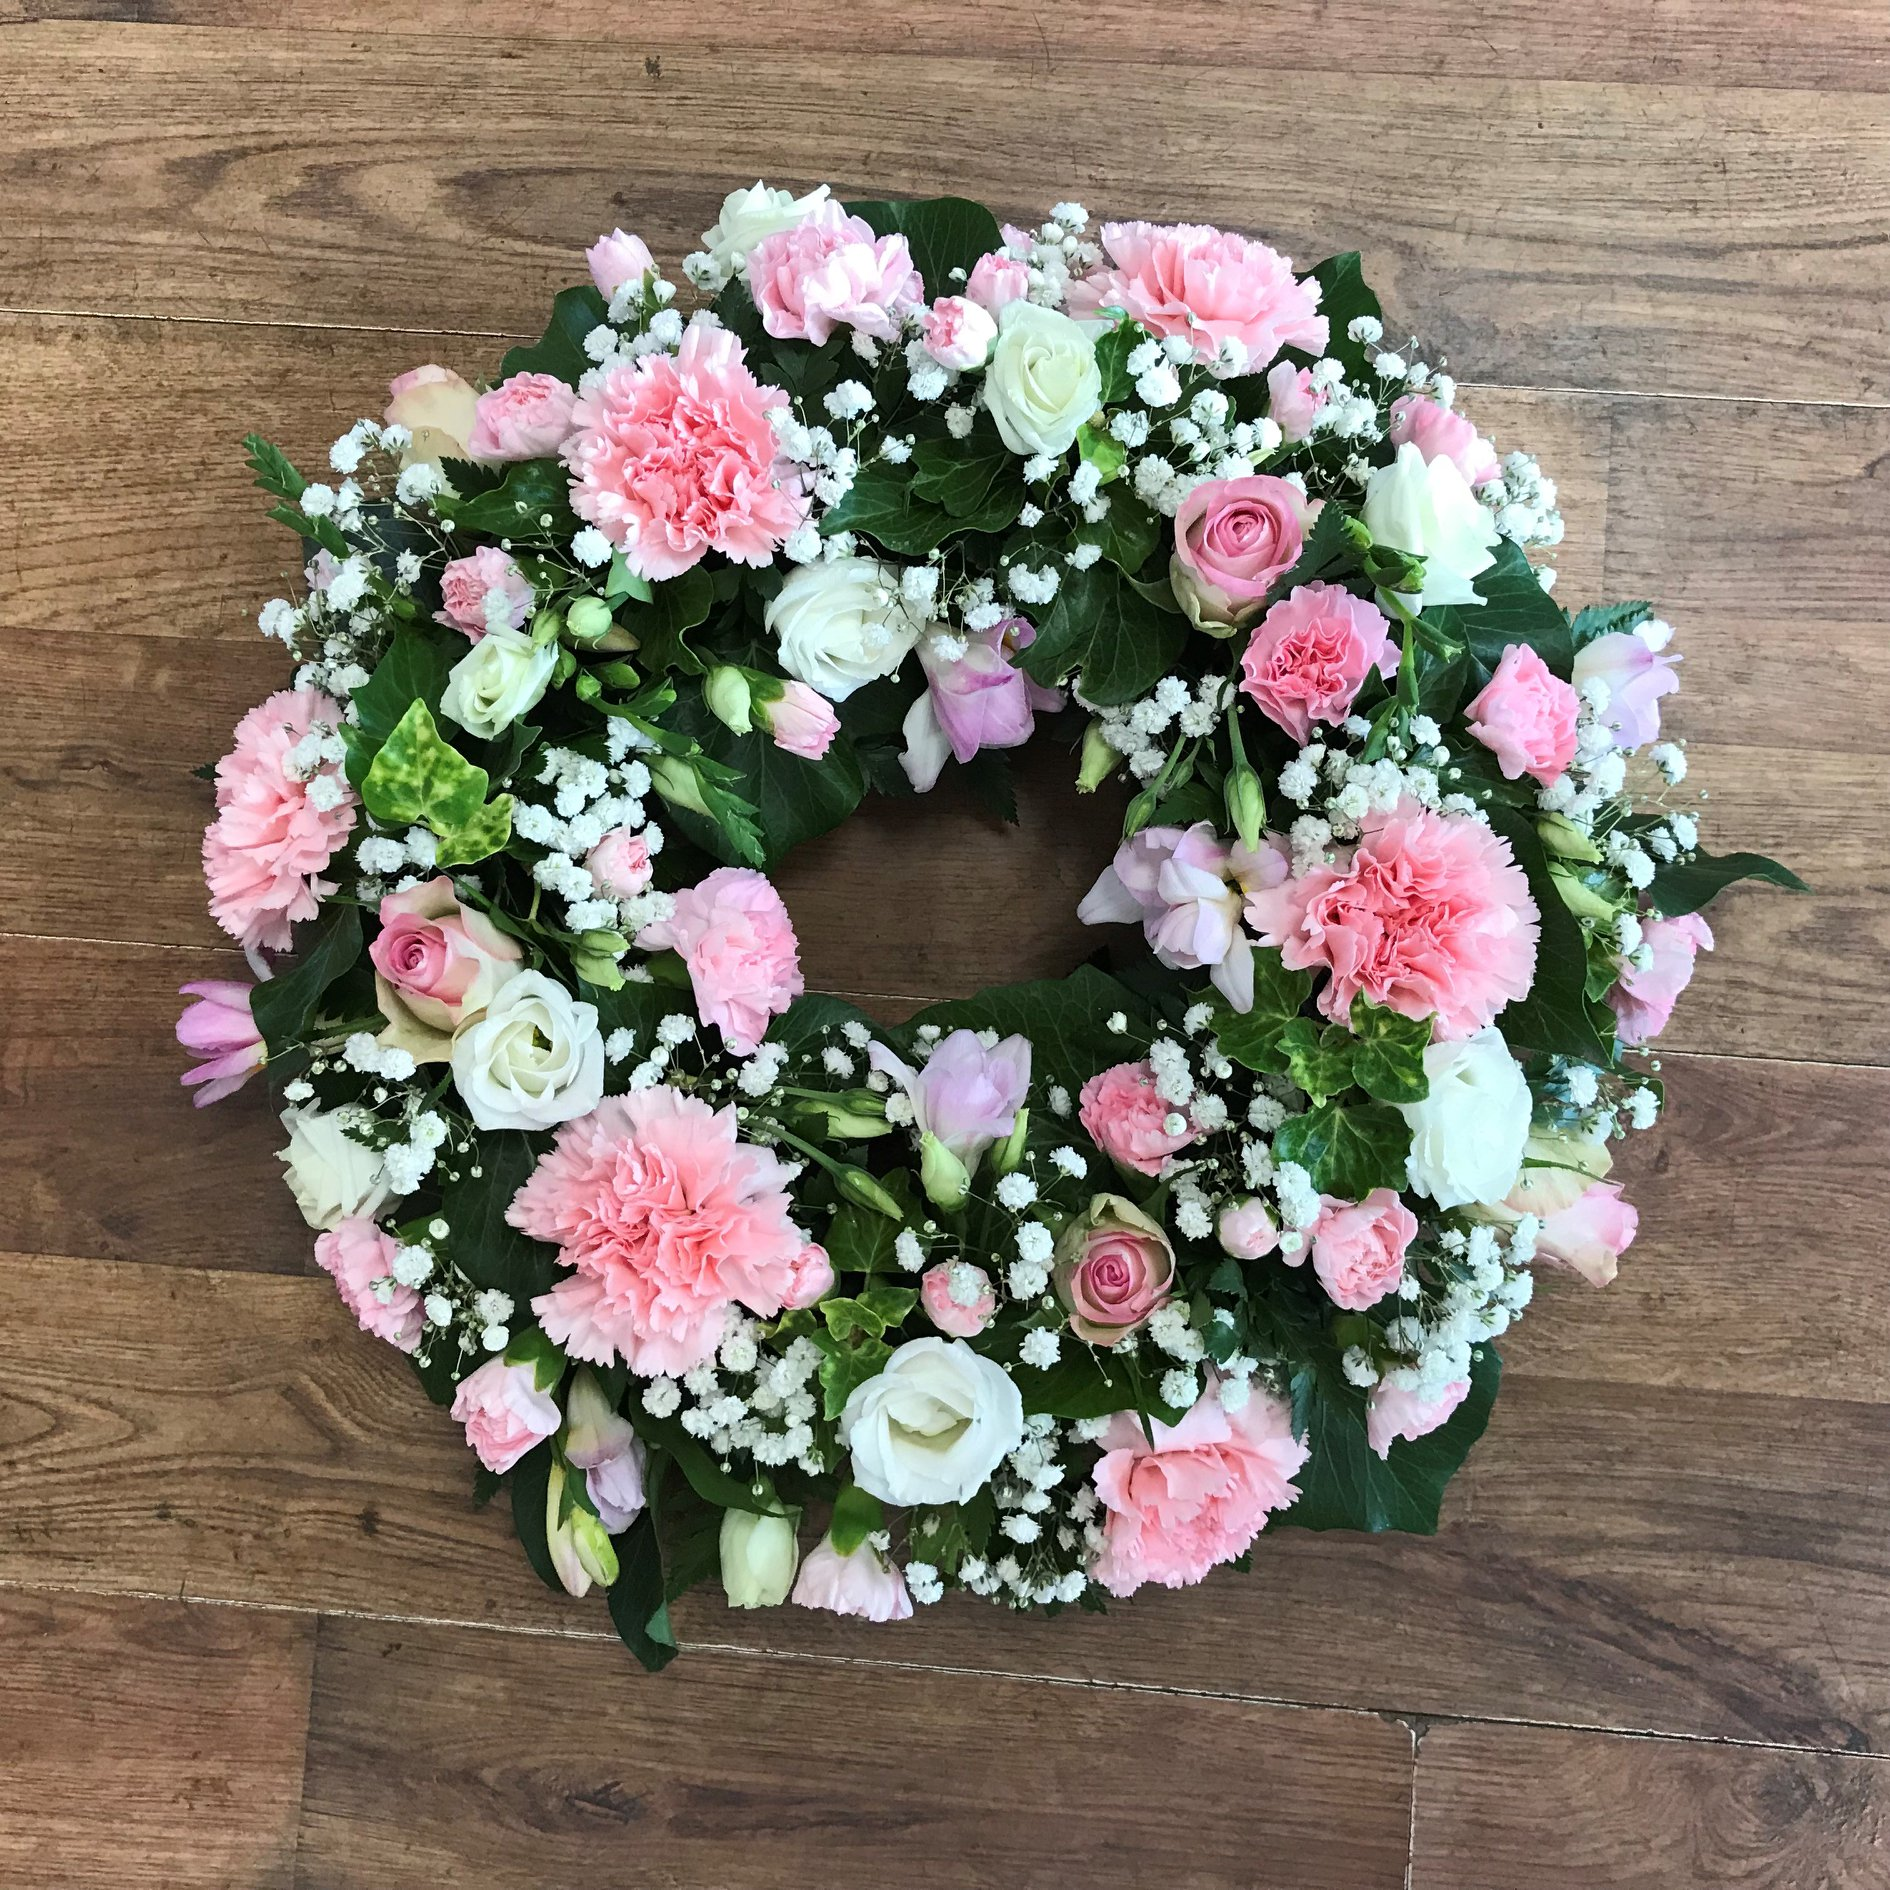 Loose Pale Pink Wreath from £40.00